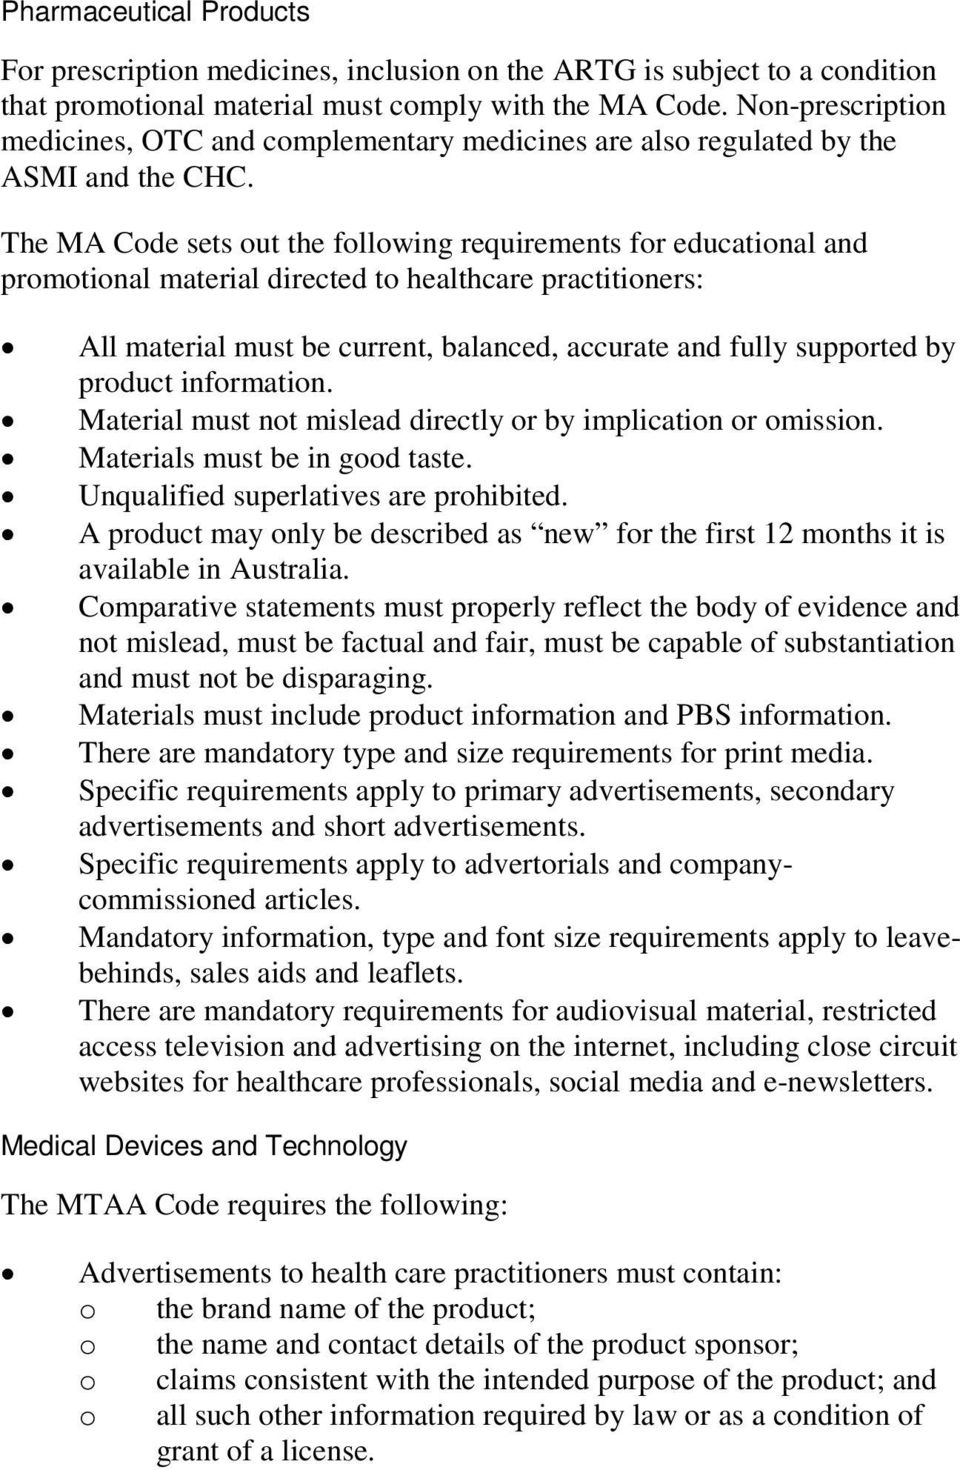 The MA Code sets out the following requirements for educational and promotional material directed to healthcare practitioners: All material must be current, balanced, accurate and fully supported by